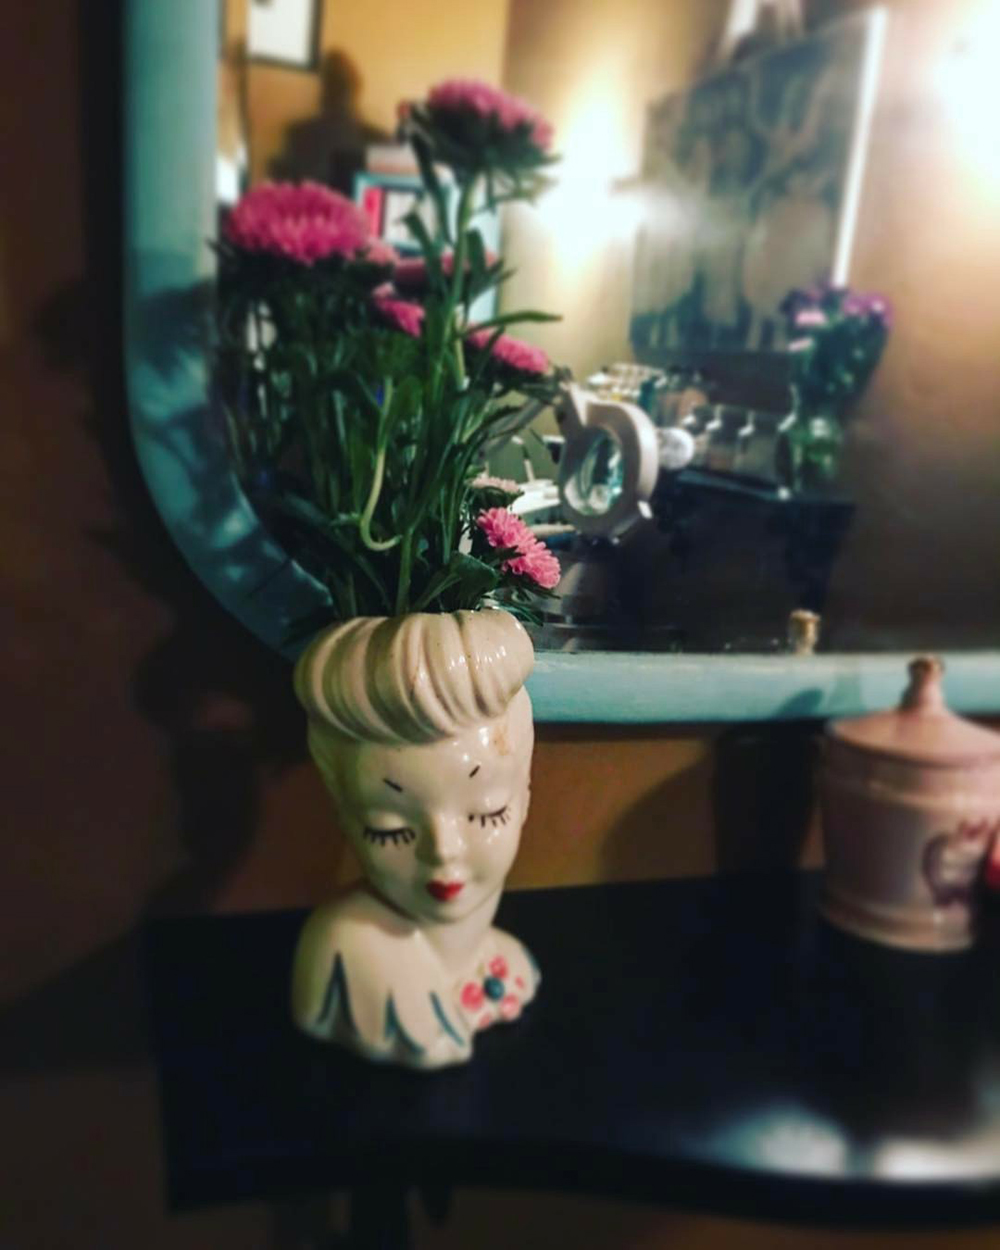 Various vintage items add a charming touch to the studio's decor.